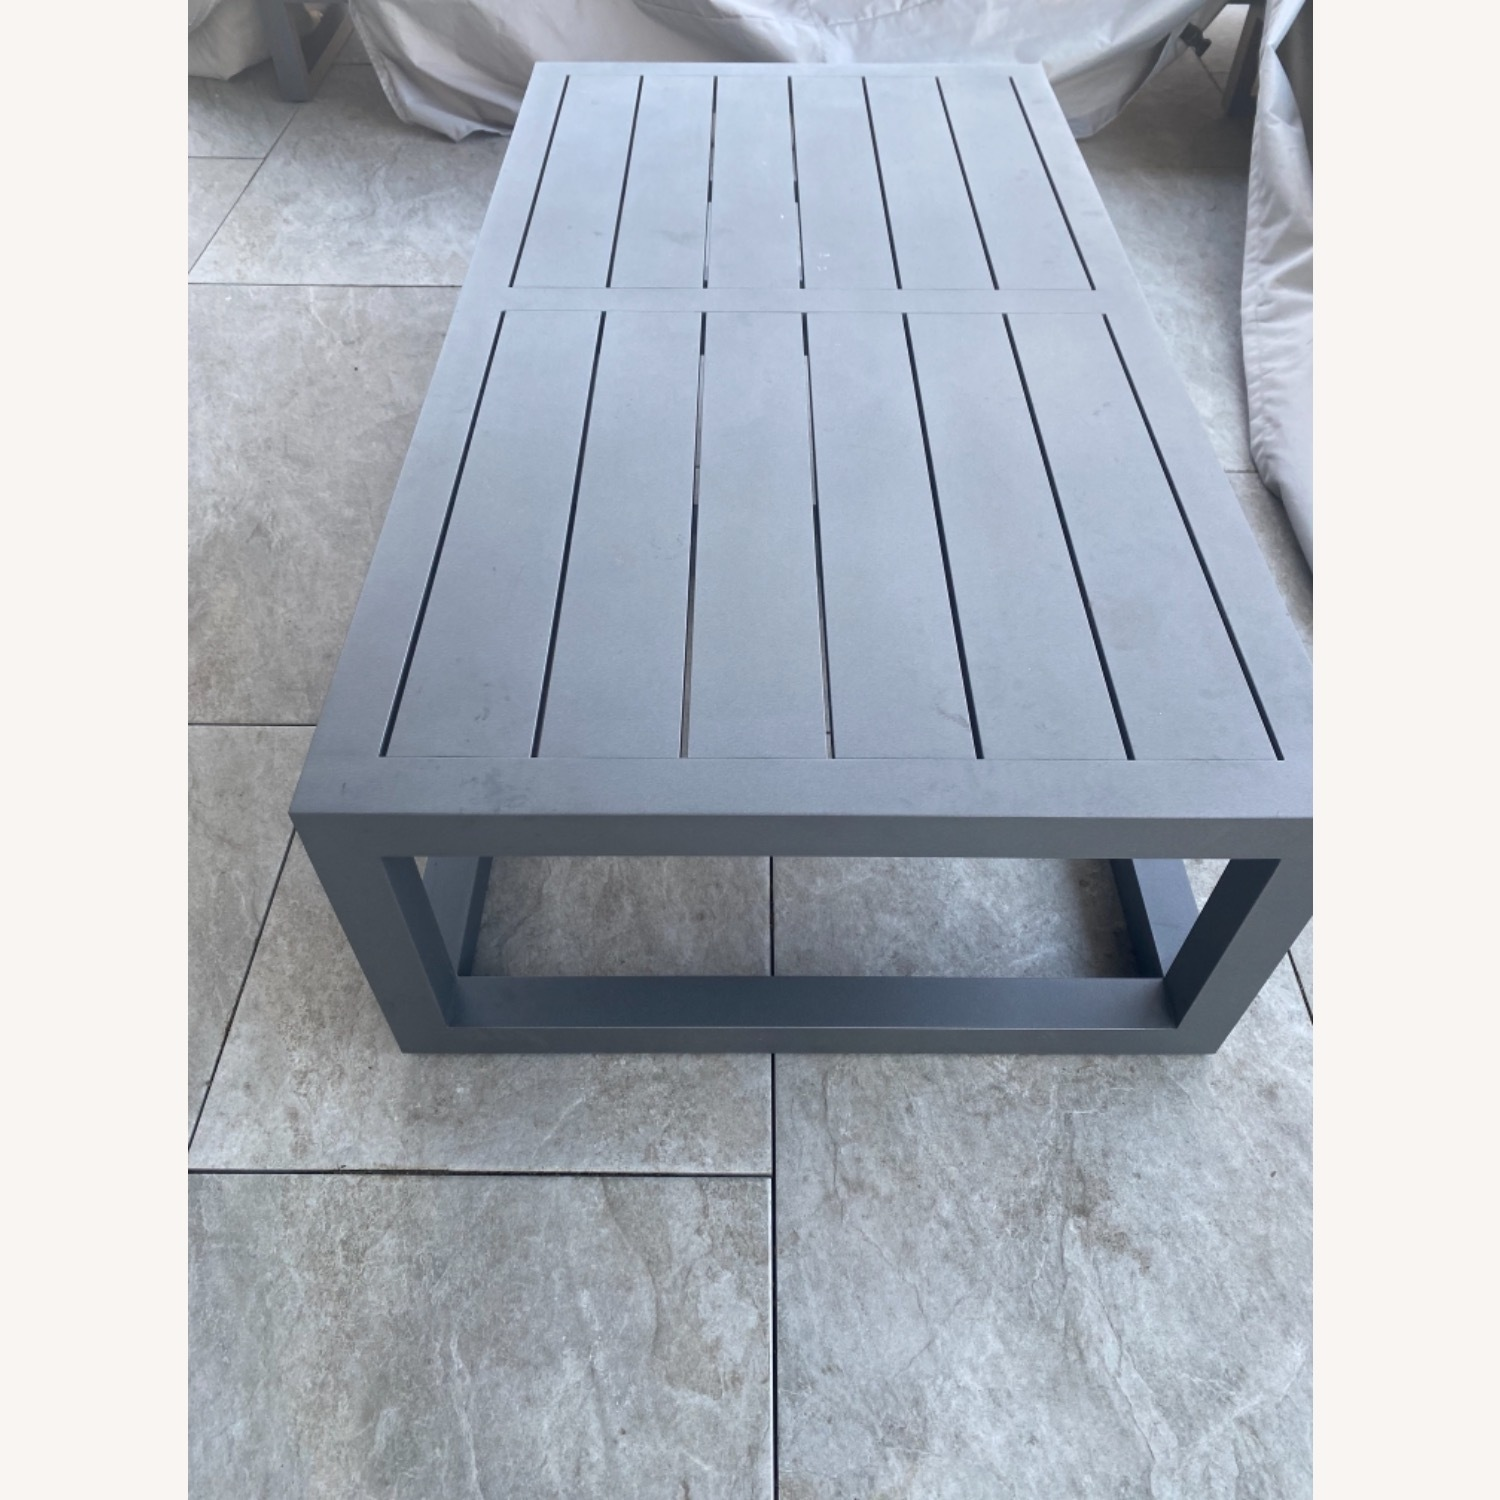 Restoration Hardware Outdoor Coffee Table - image-2